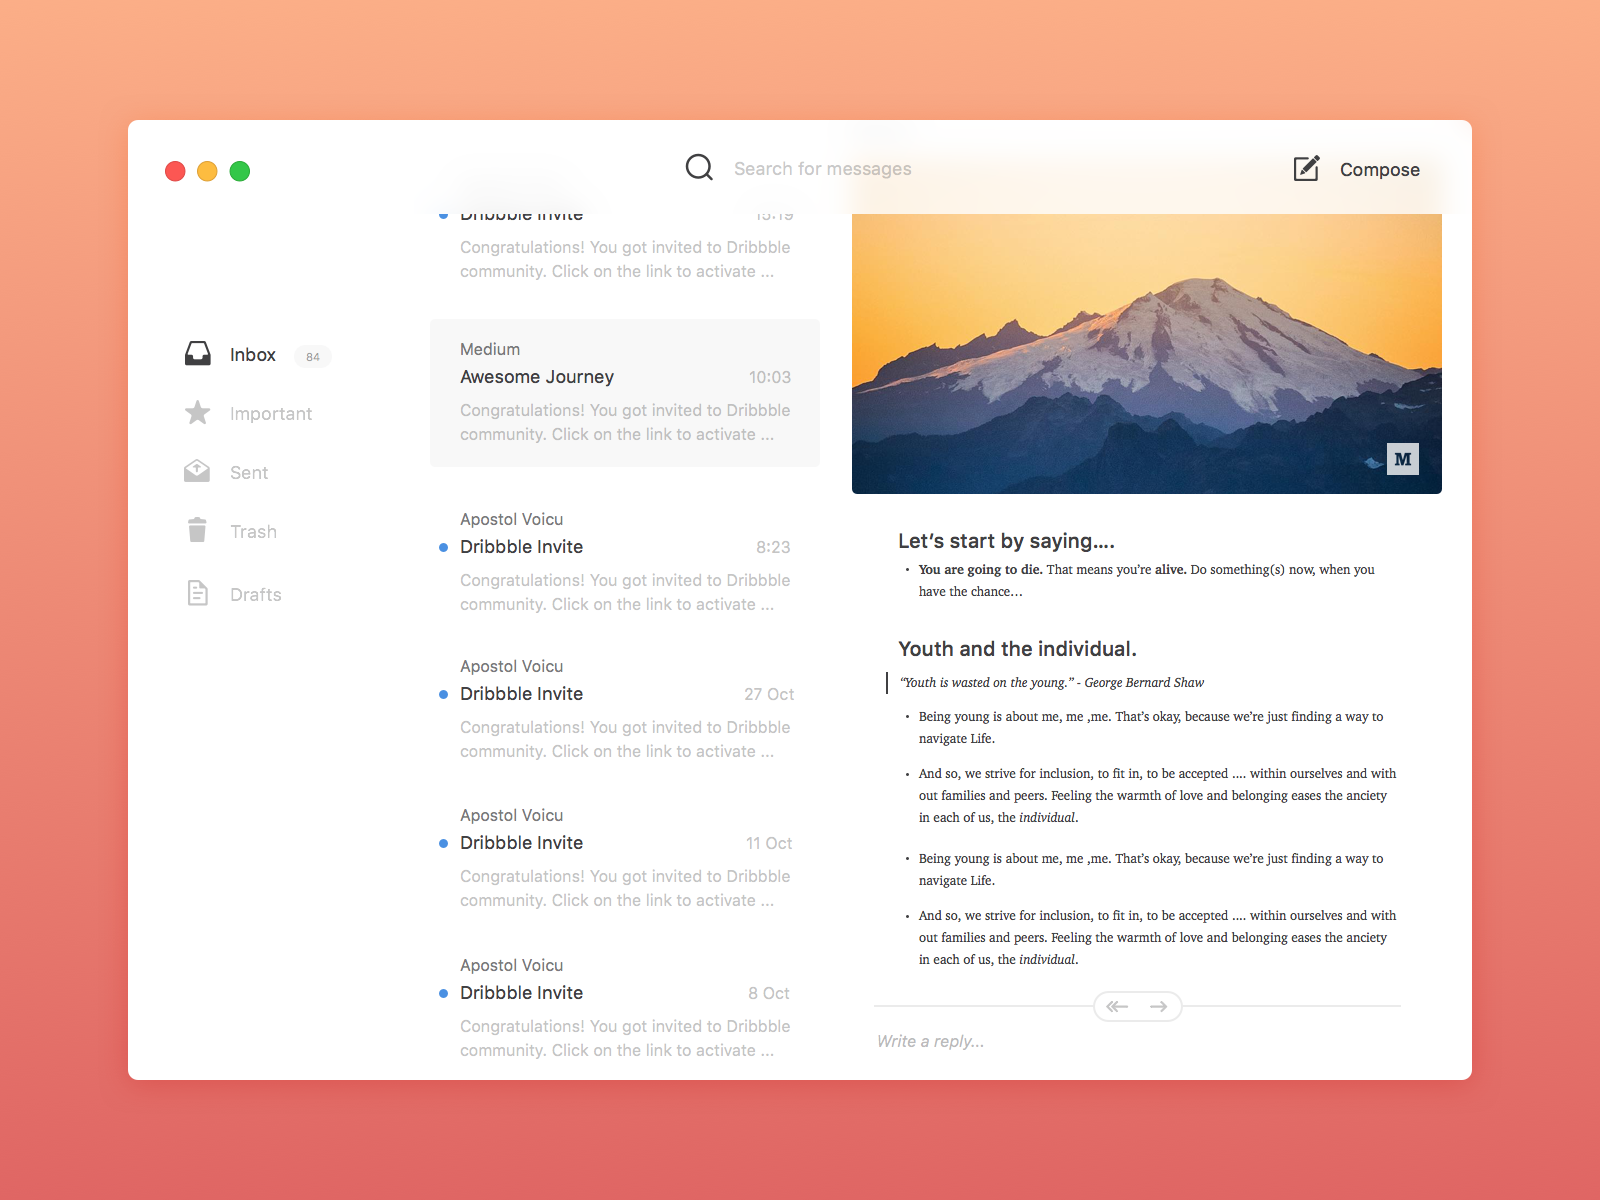 Mail app active